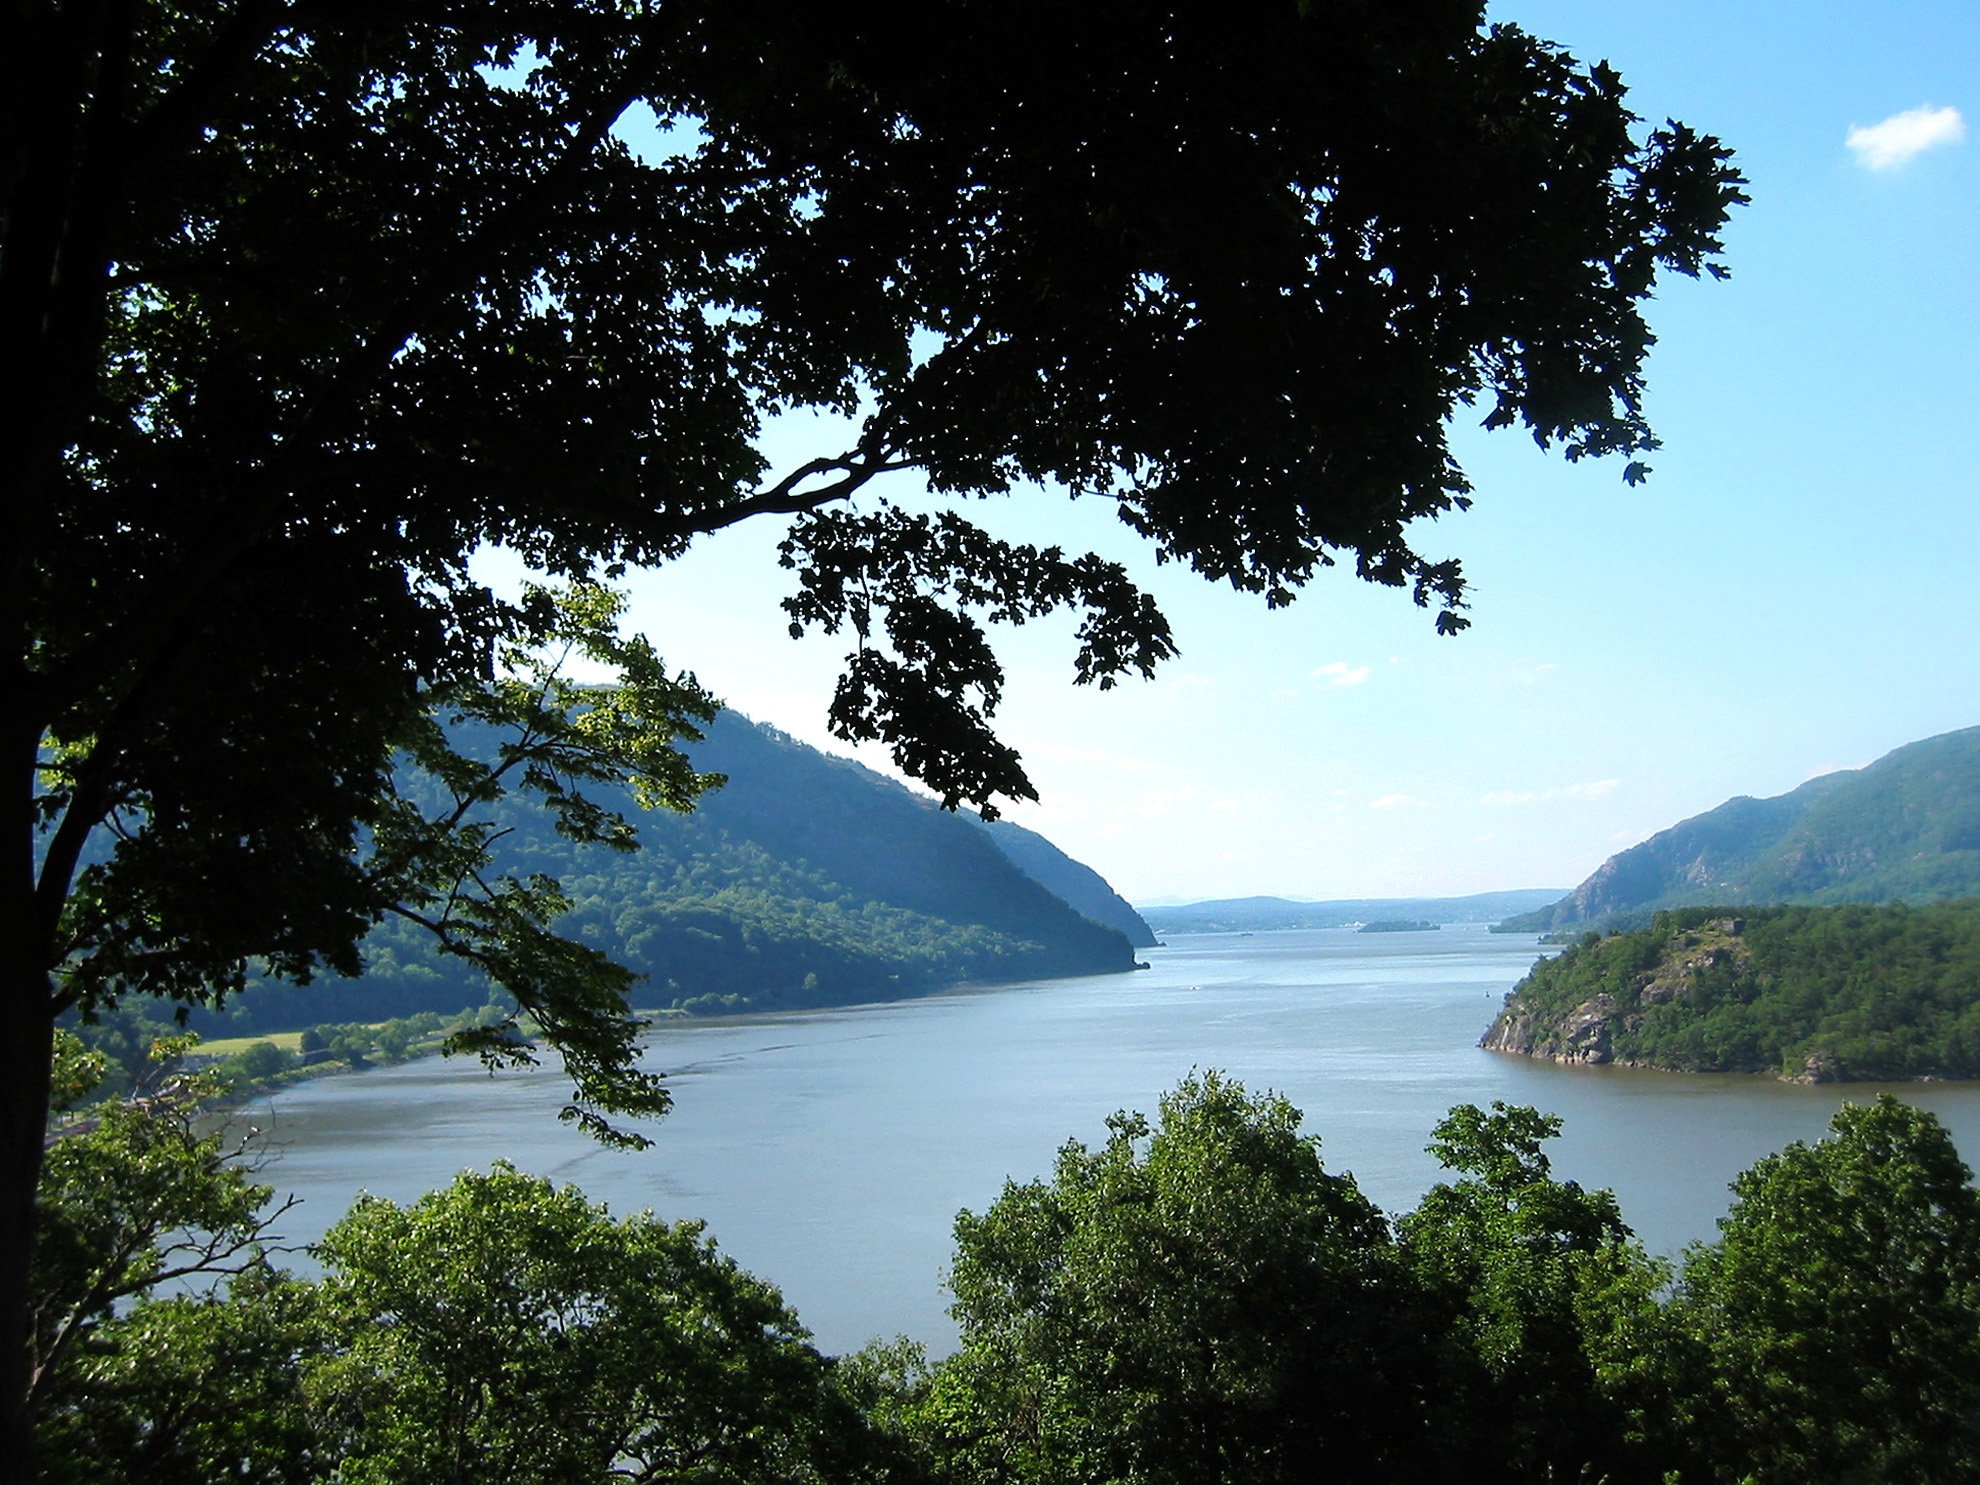 Photo of Hudson River from Creative Commons Flickr user Elizabeth Bean, http://www.flickr.com/photos/52975930@N00/112703530/